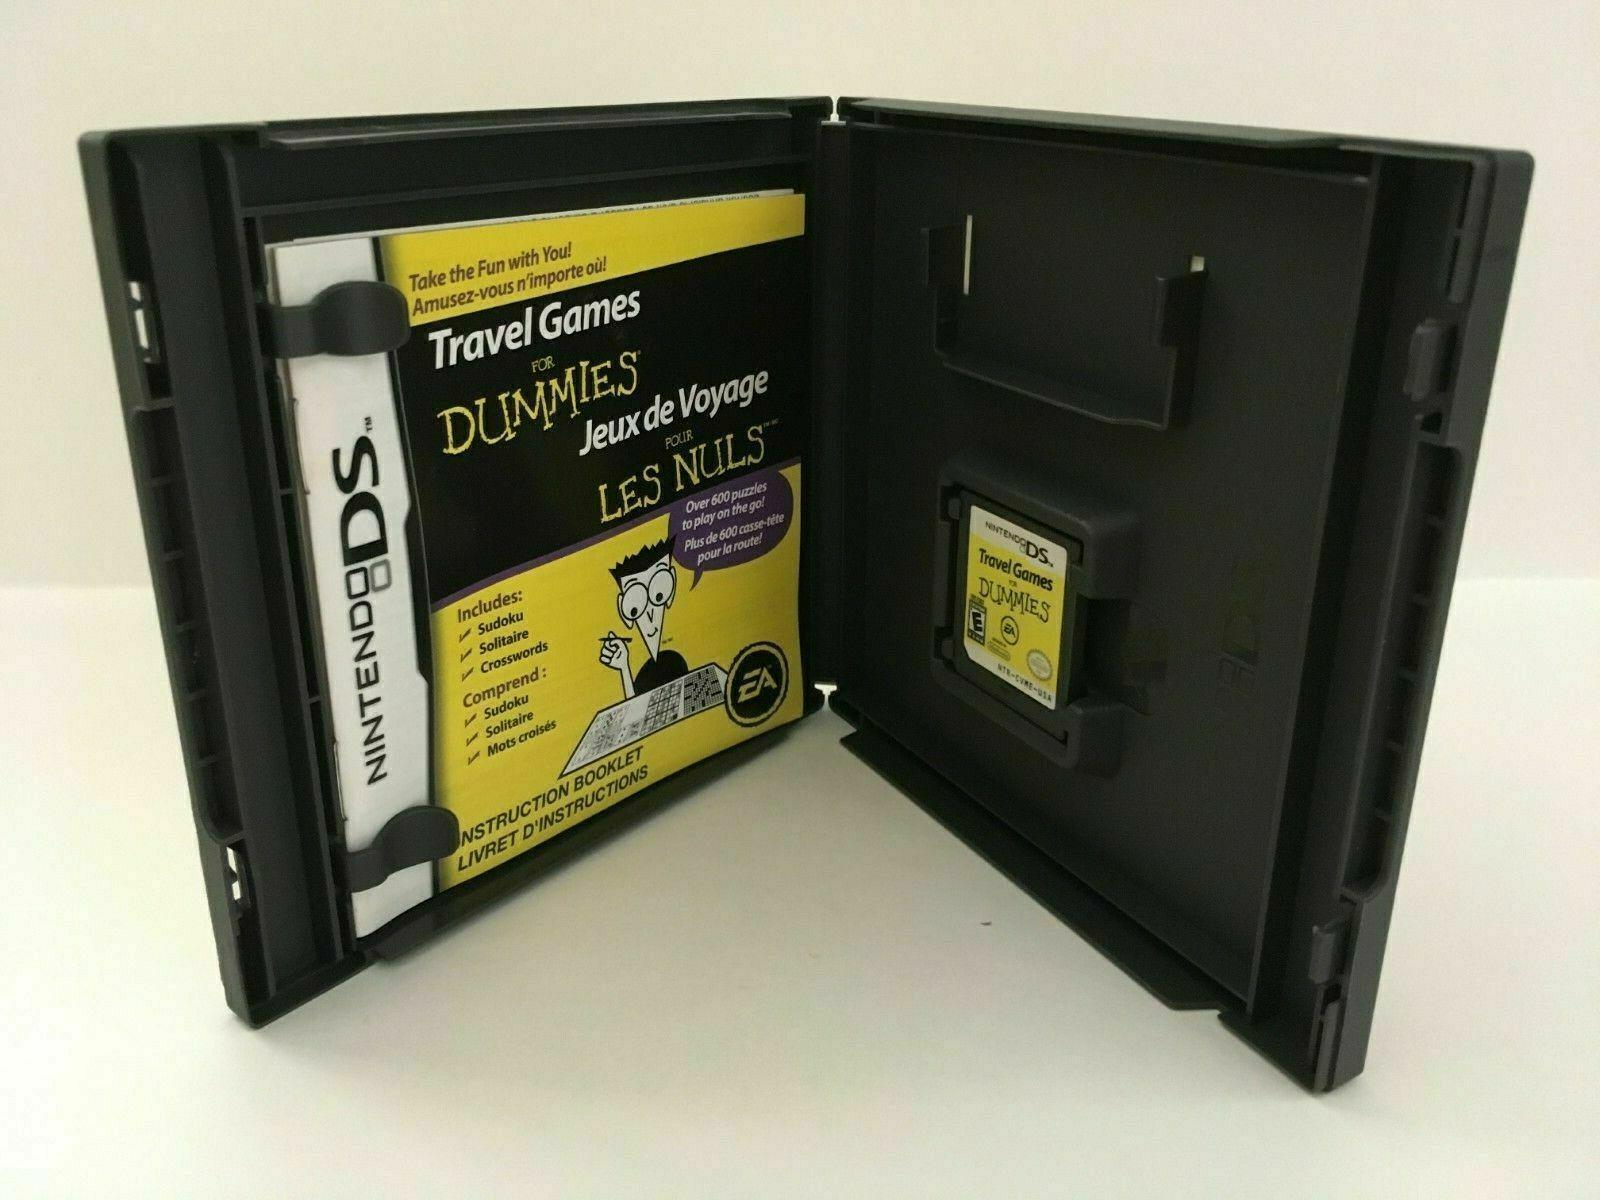 Travel Games For Dummies (Nintendo DS, 2008) CIB, USA SELLER image 4